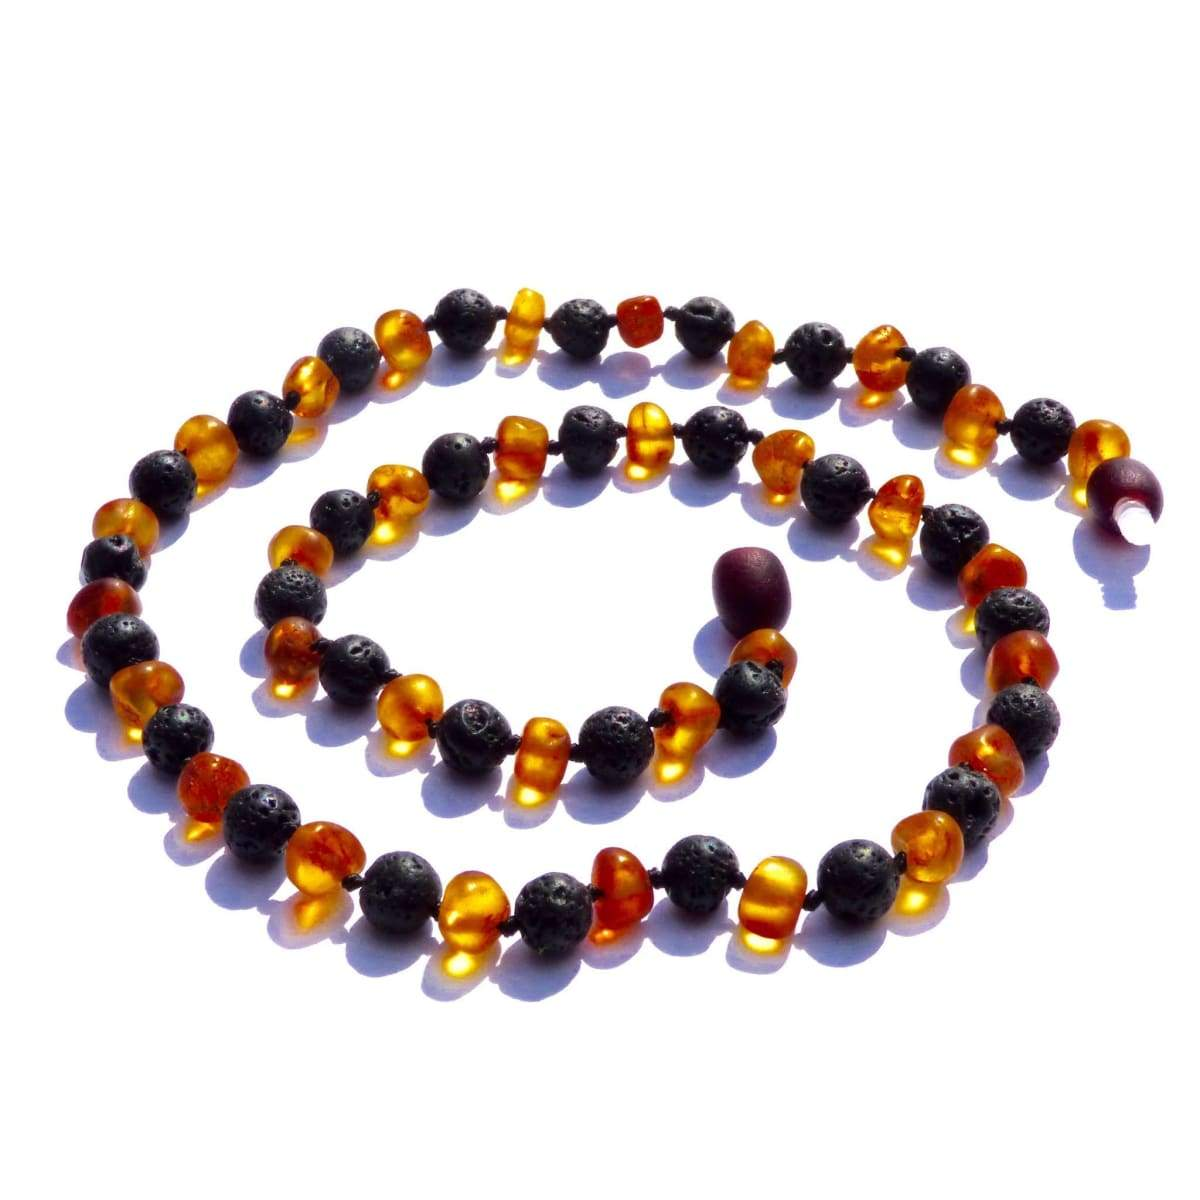 Amber-Gemstone Nutmeg & Lava Stone - 20 Necklace - Baltic Amber & Gemstone Jewelry